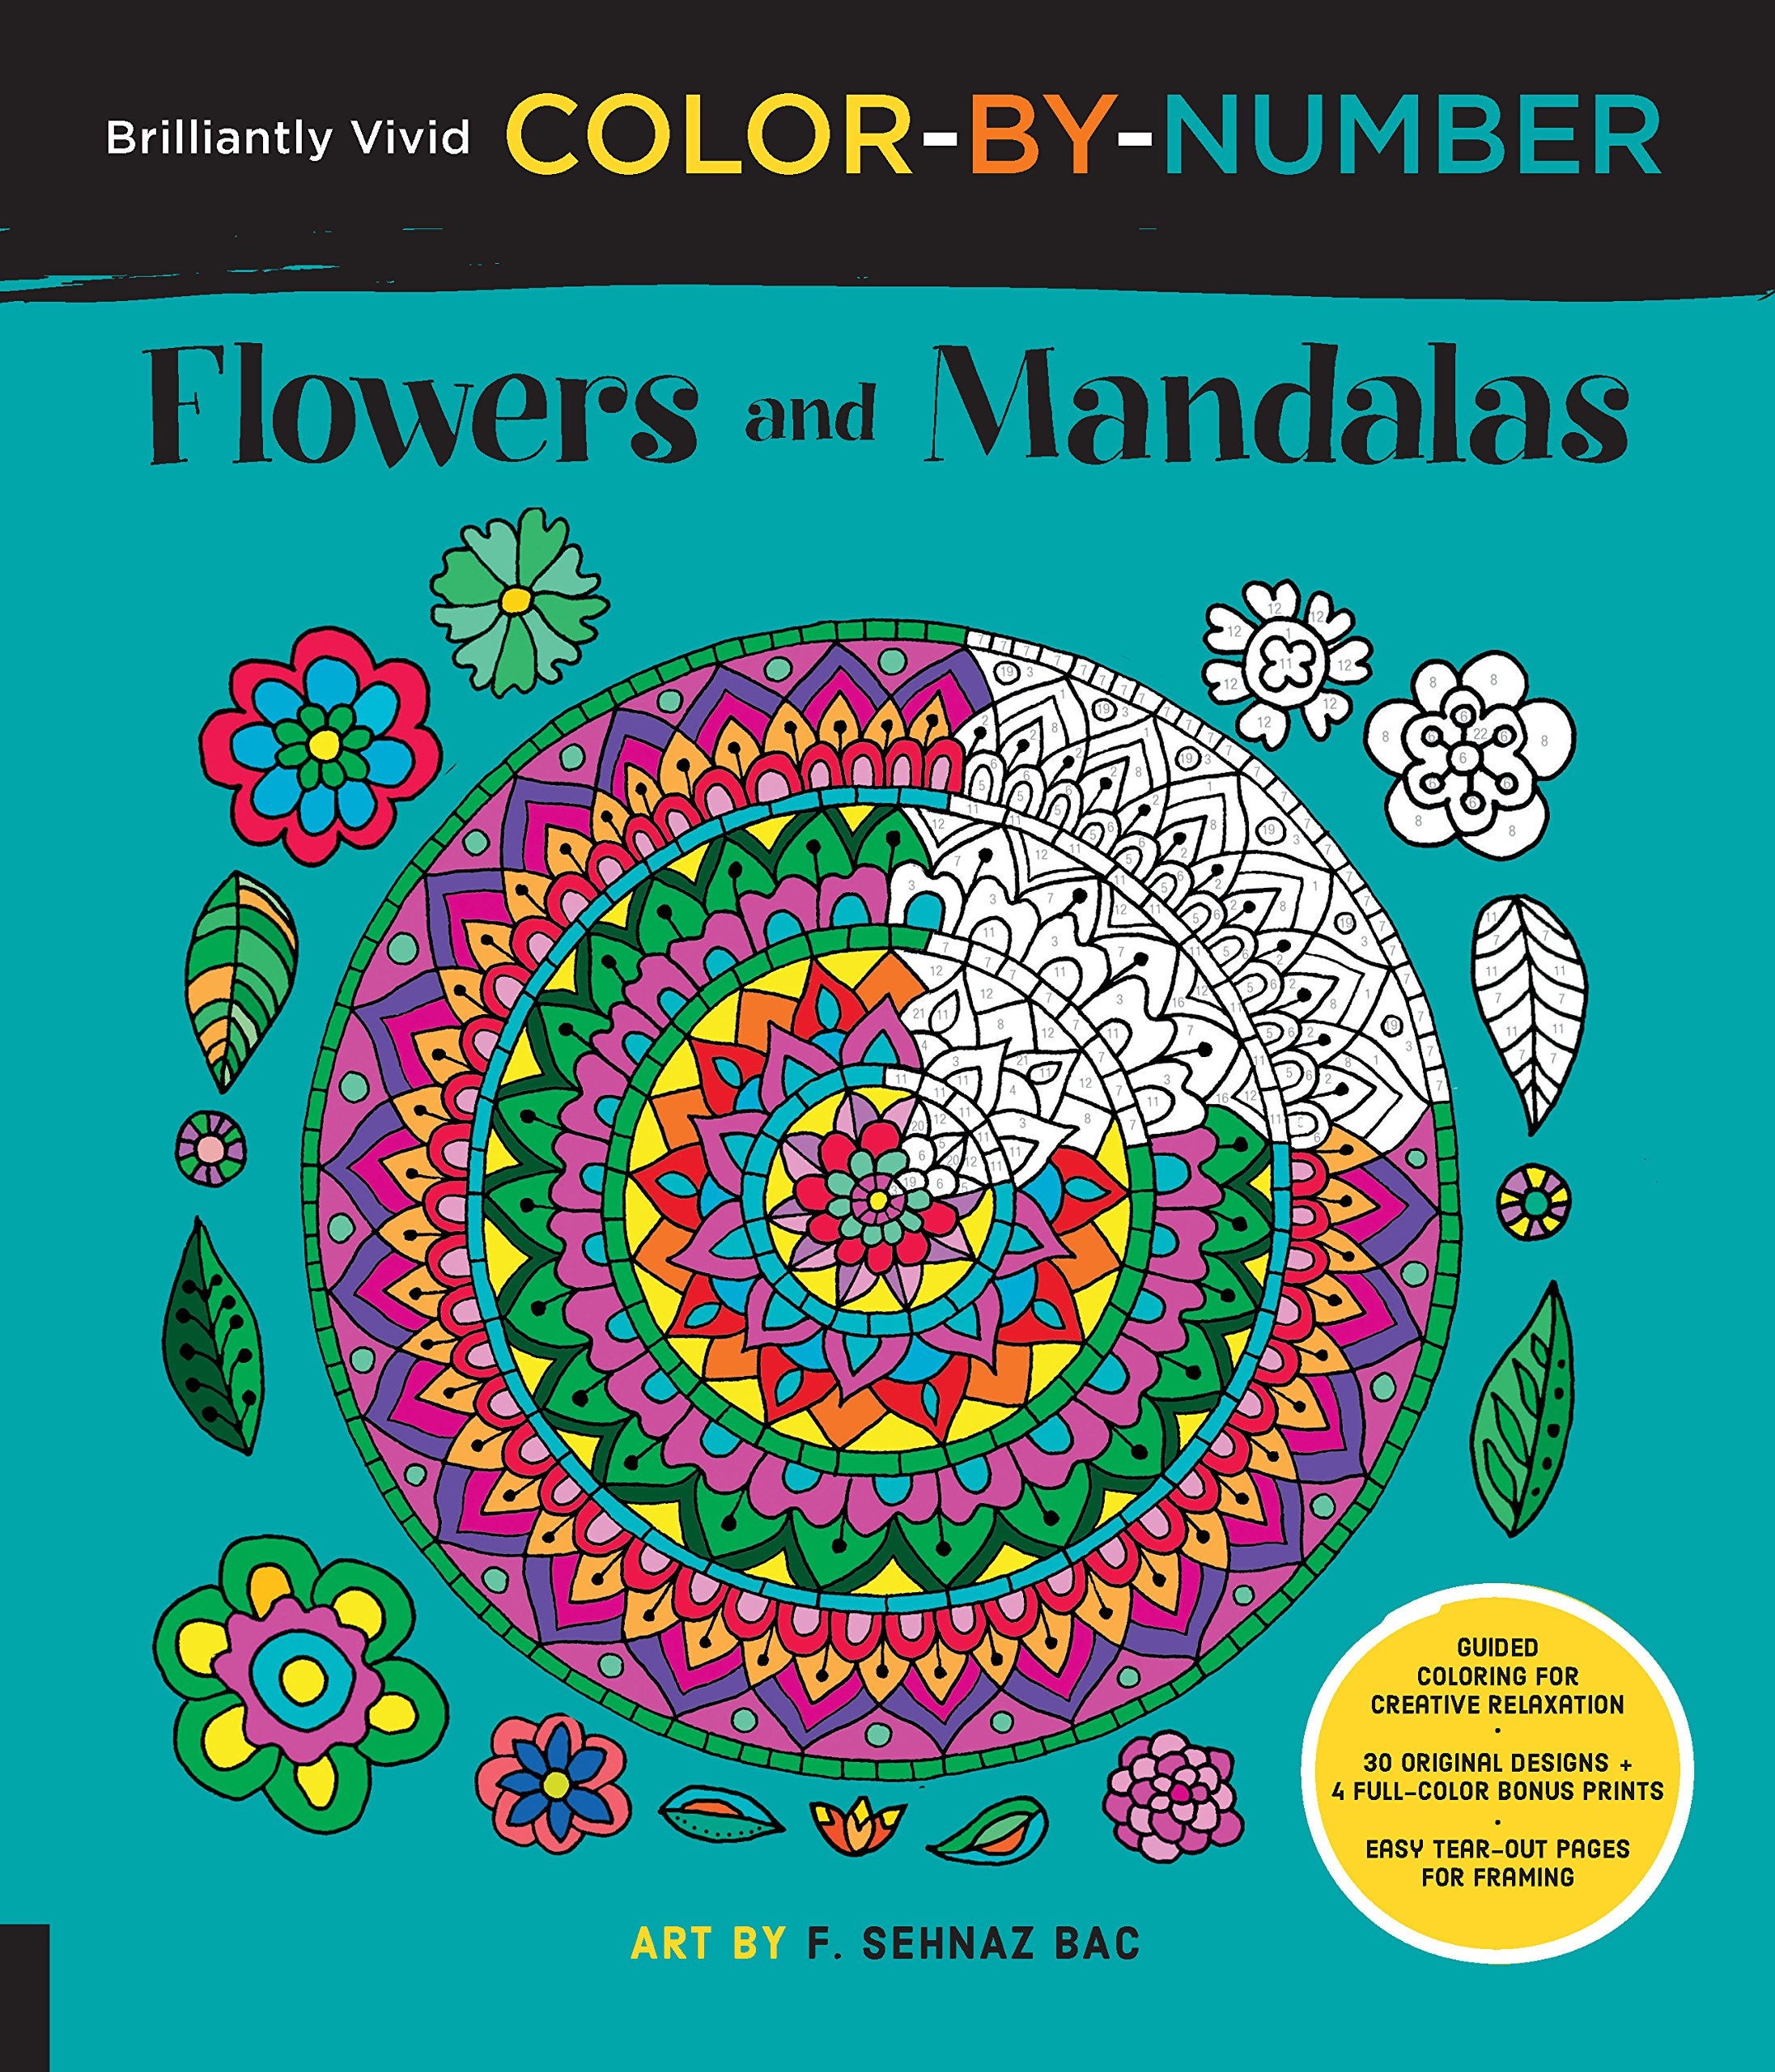 Brilliantly Vivid Color-by-Number: Flowers and Mandalas: Guided ...